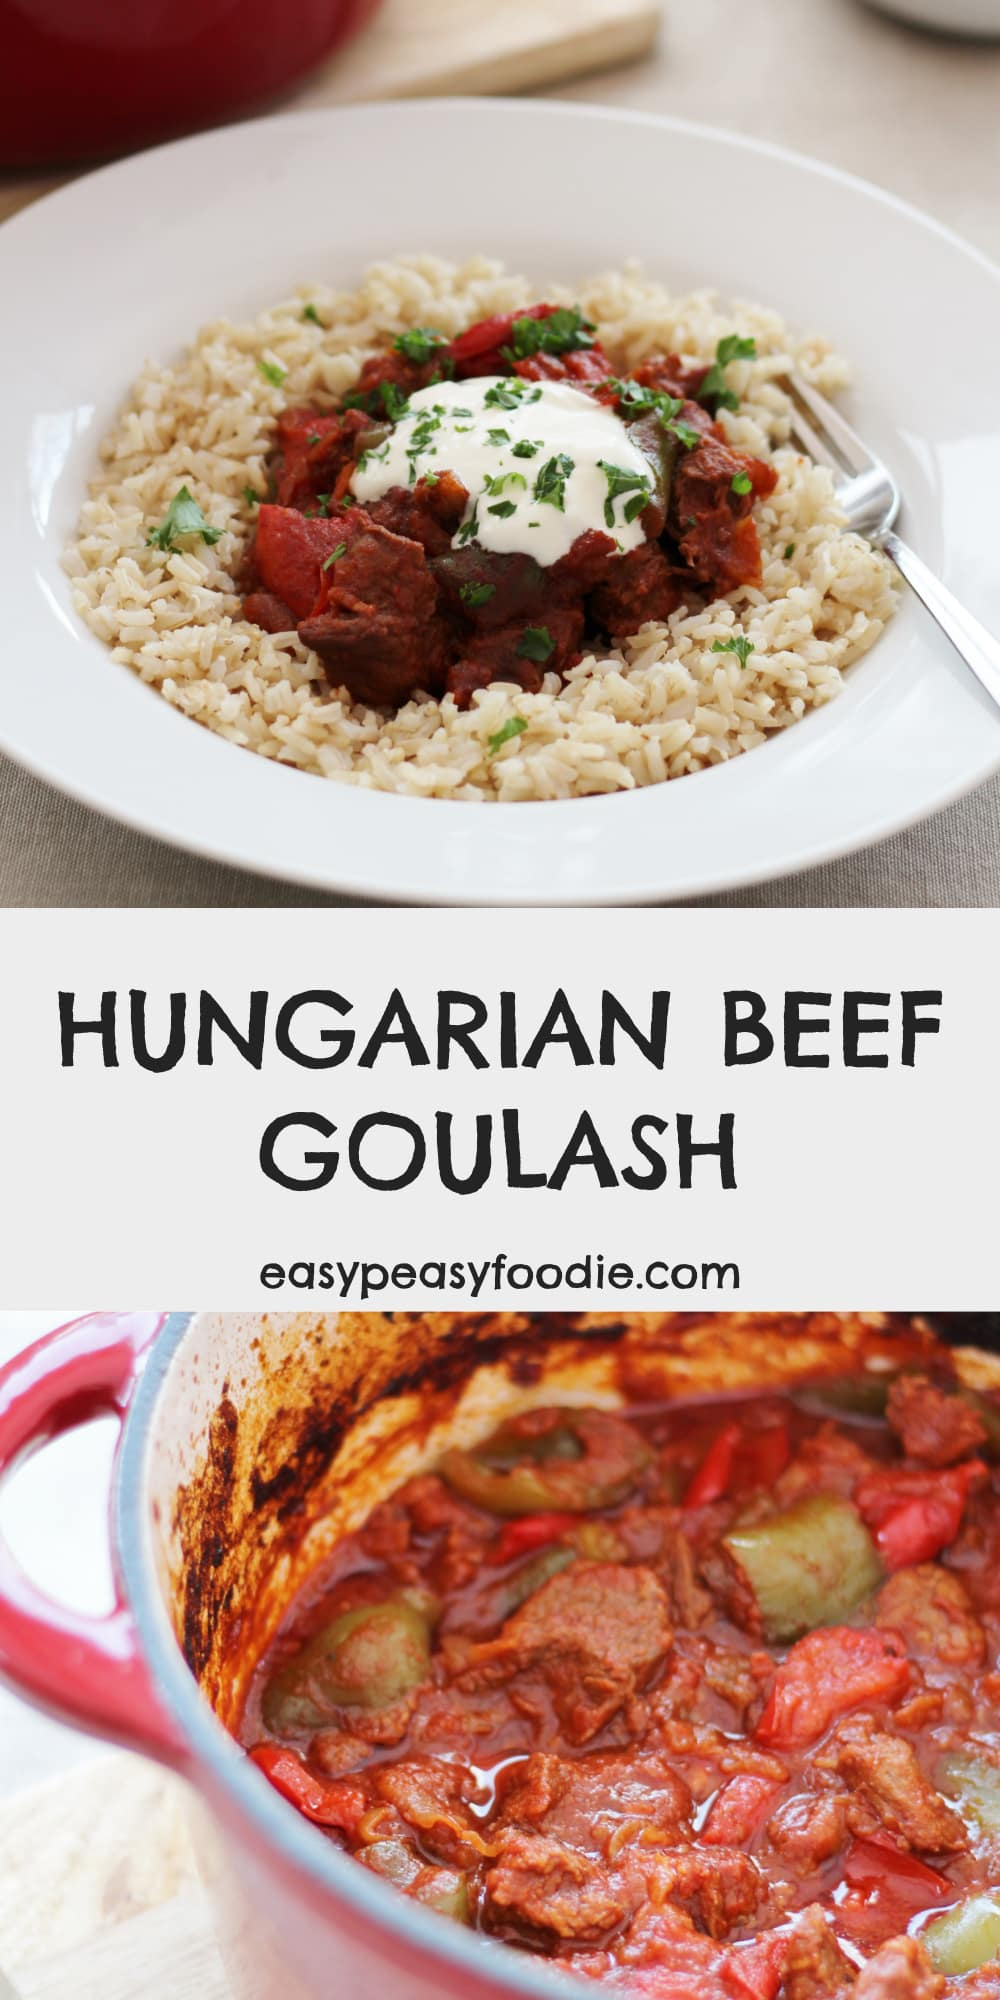 Easy Hungarian Beef Goulash - pinnable image for Pinterest